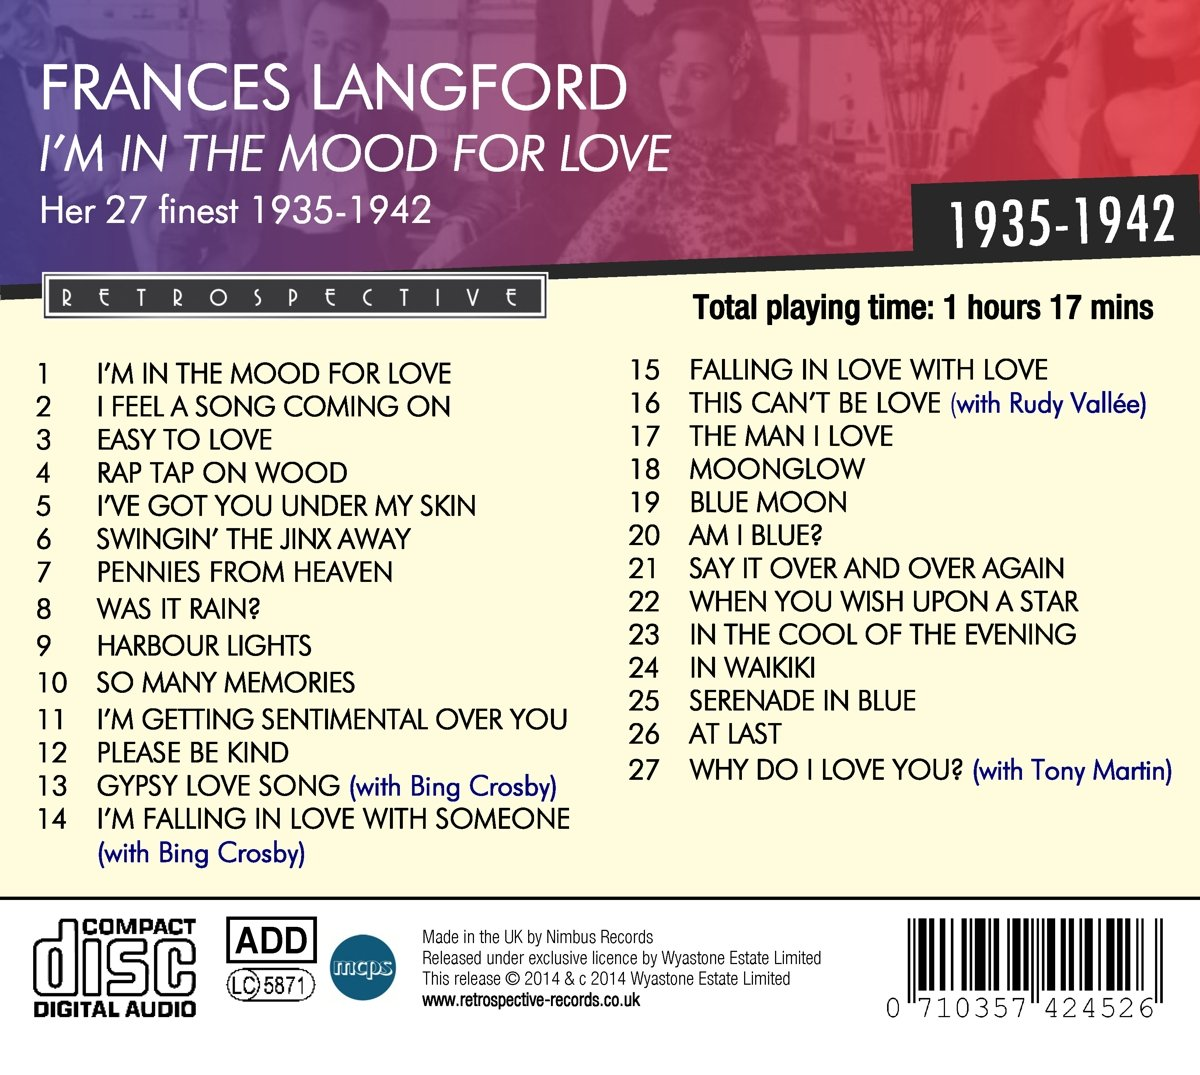 FRANCES LANGFORD - I'm In The Mood For Love - Amazon com Music